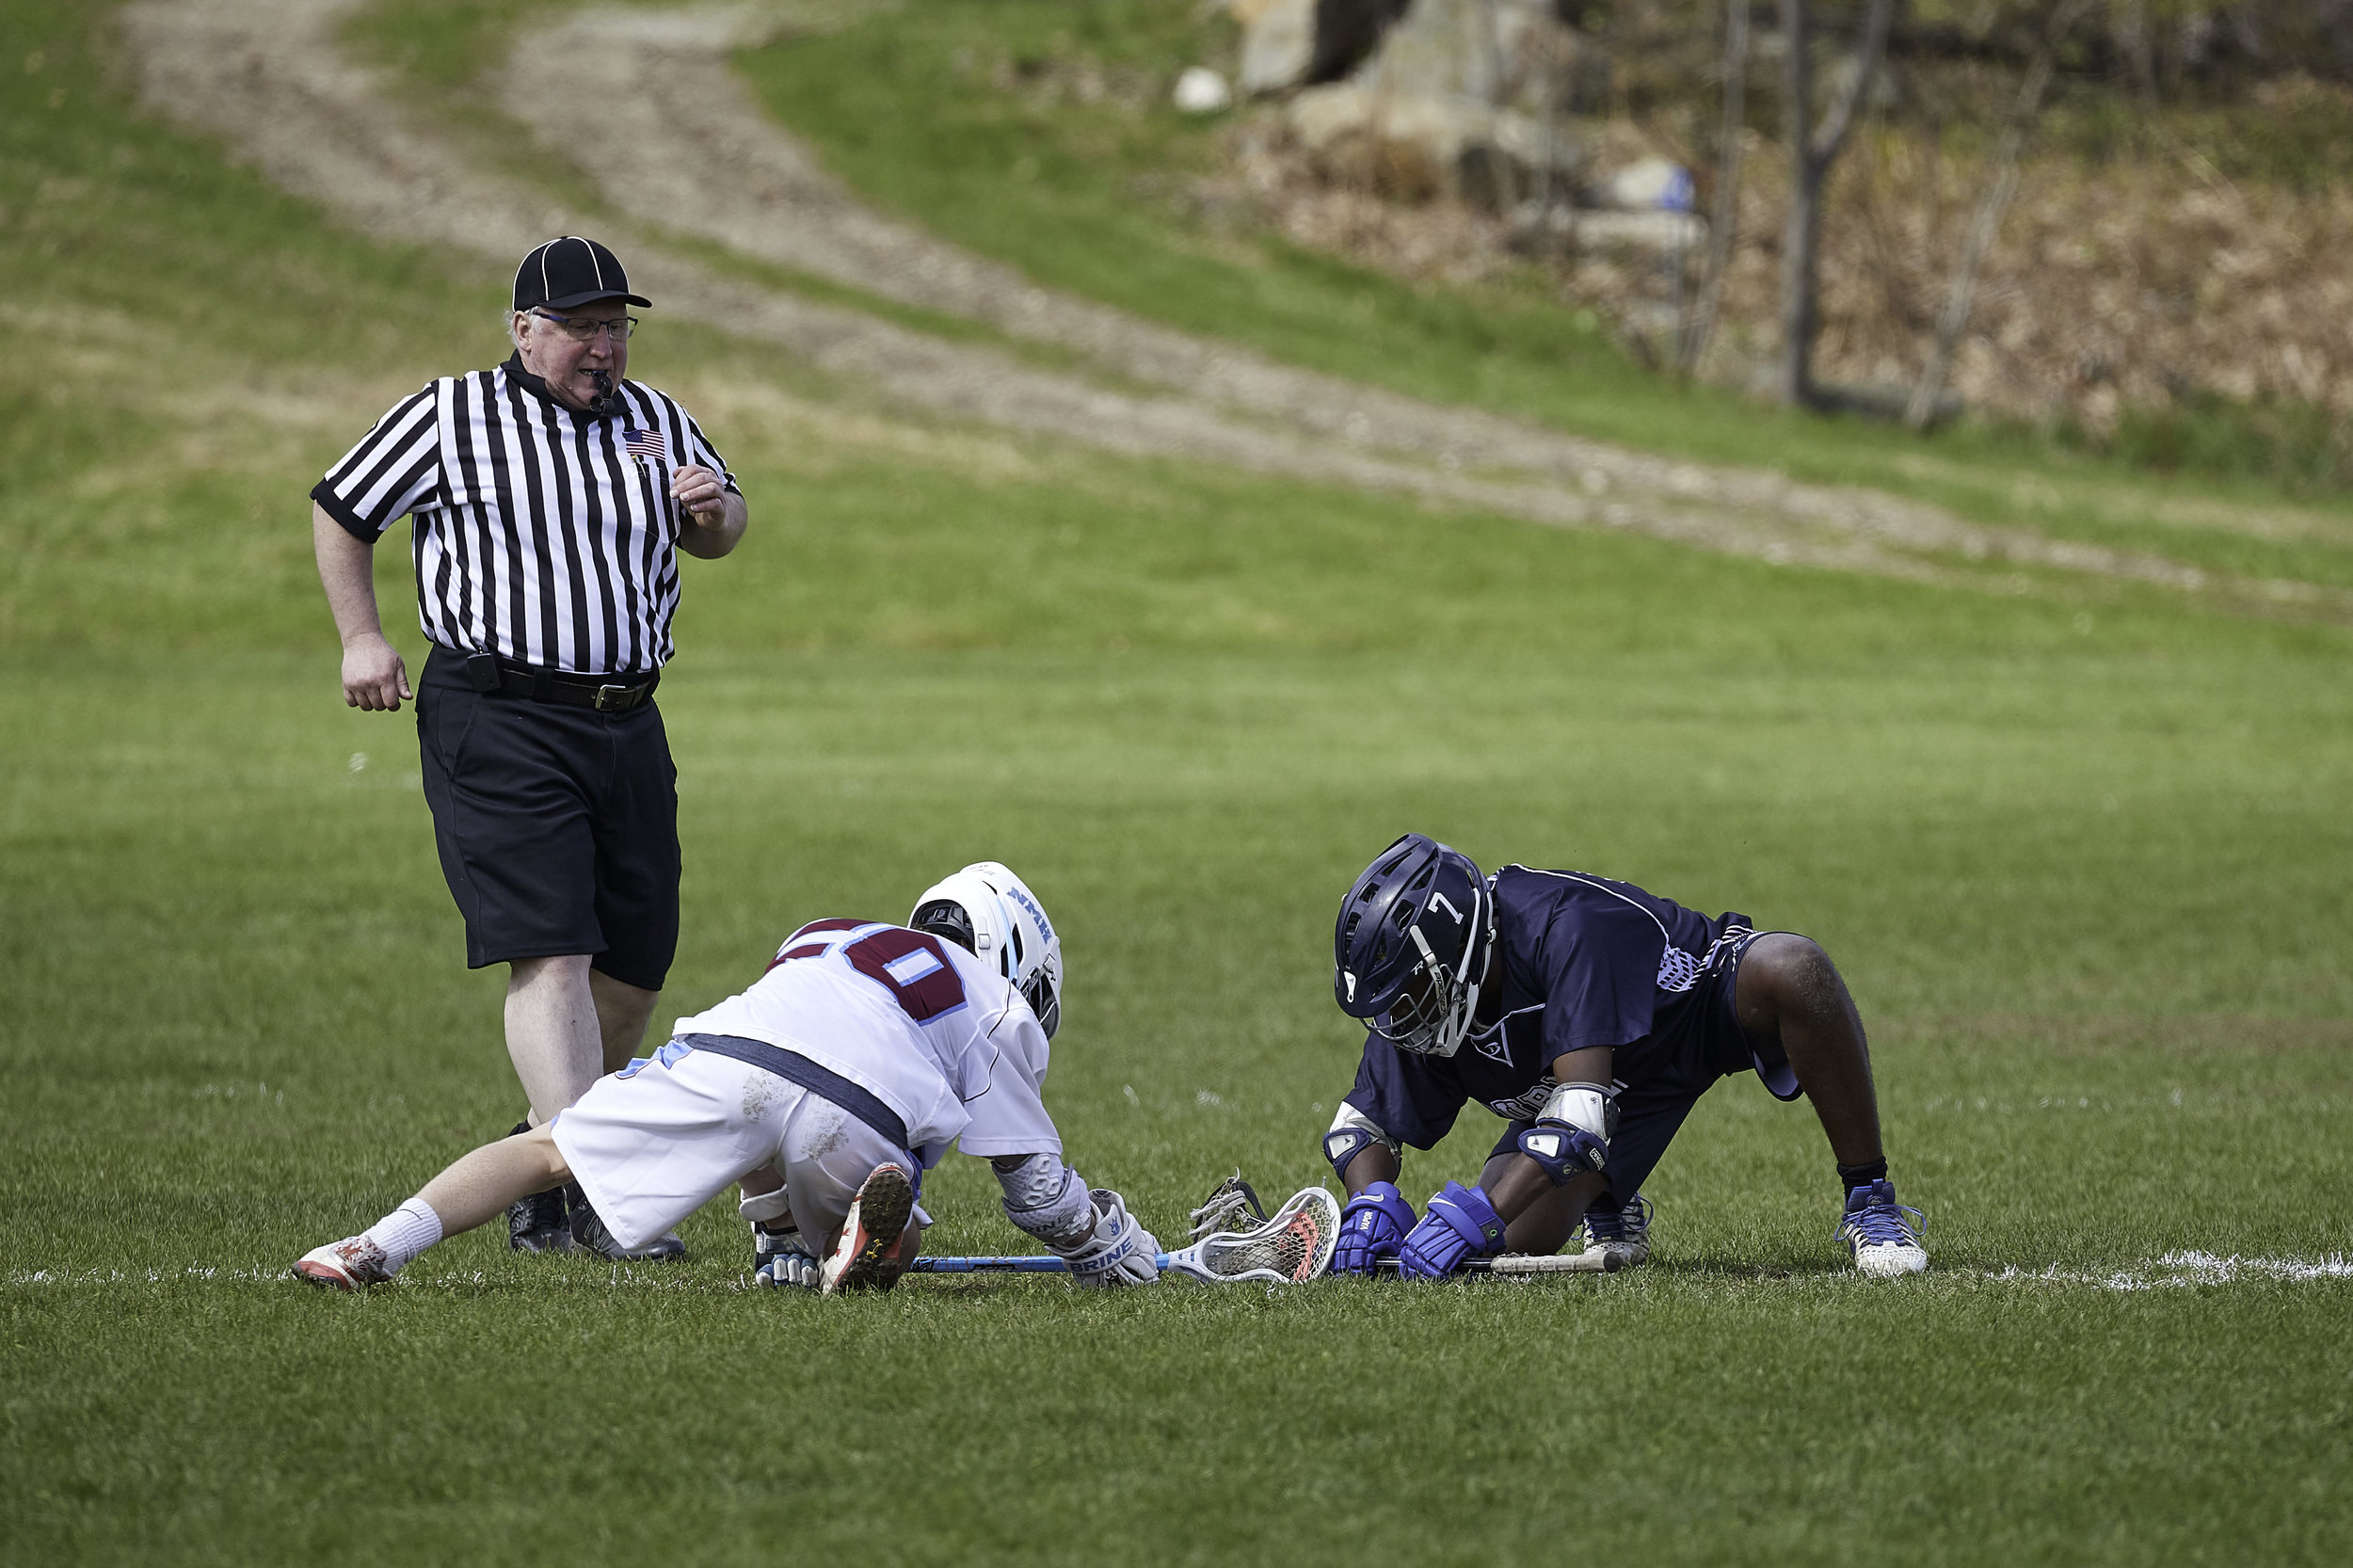 Boys Lax vs Northfield Mount Hermon JV - May 15 2019 - 0024.jpg